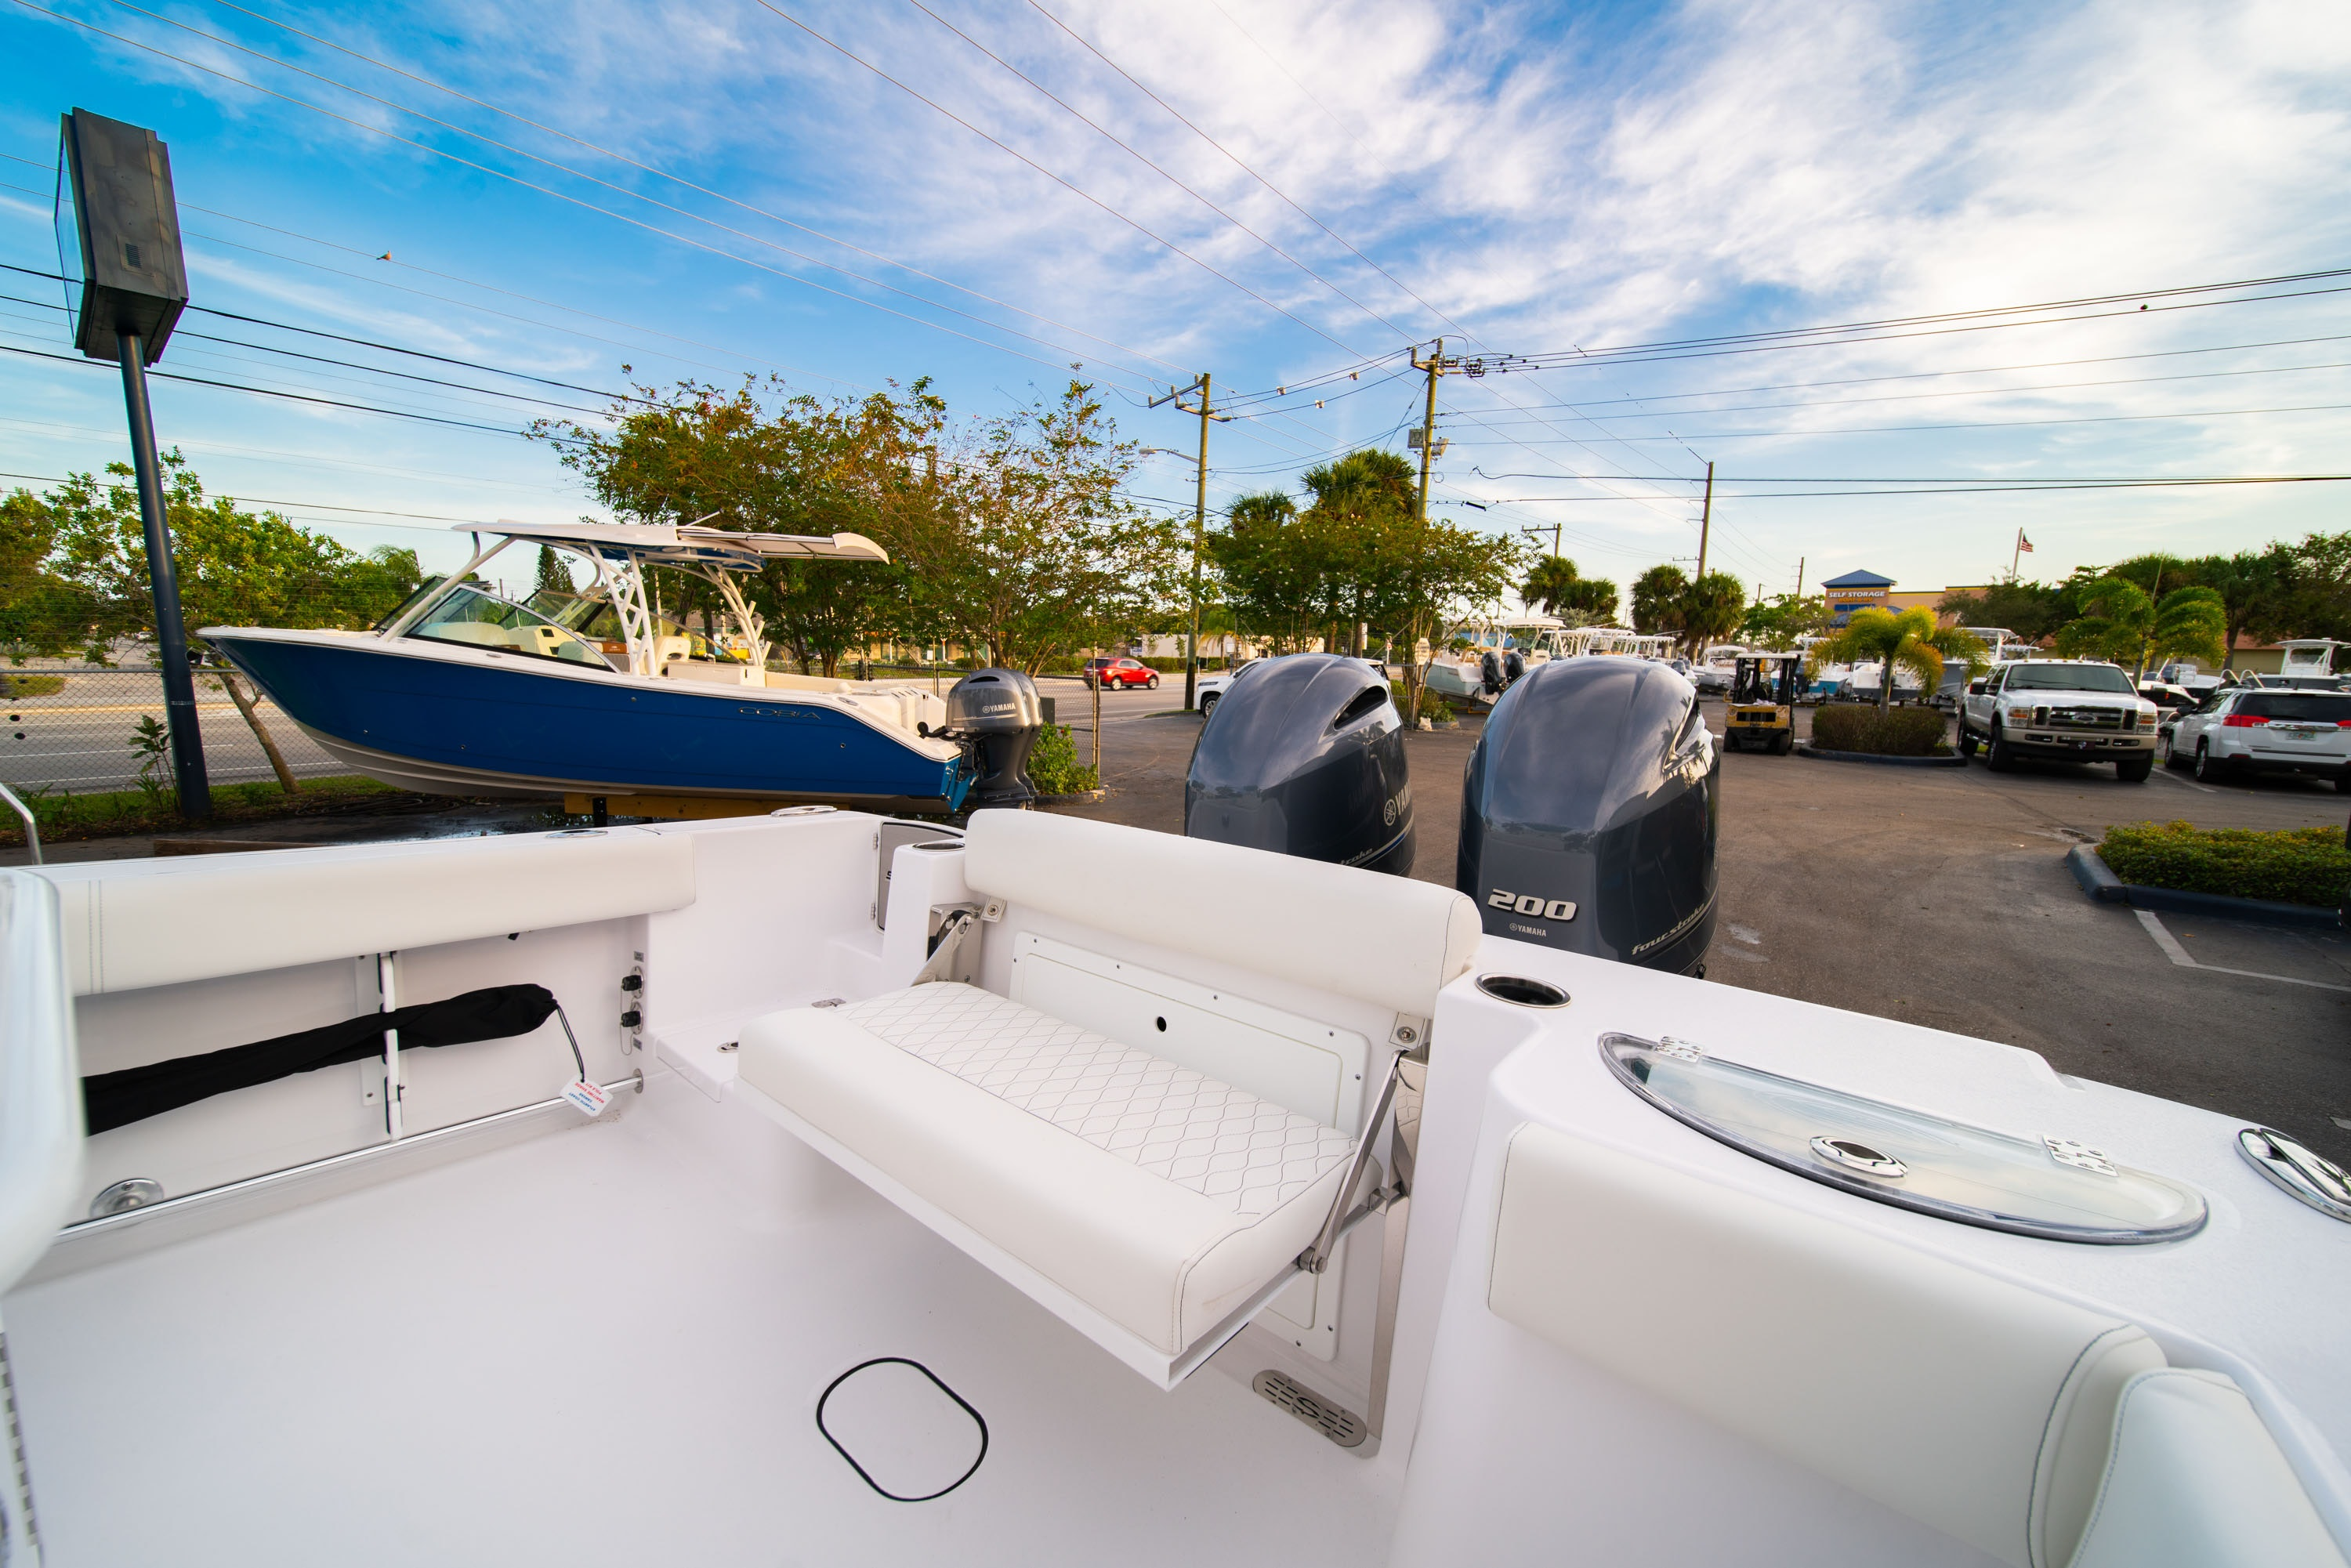 Thumbnail 14 for New 2020 Sportsman Open 282 Center Console boat for sale in West Palm Beach, FL